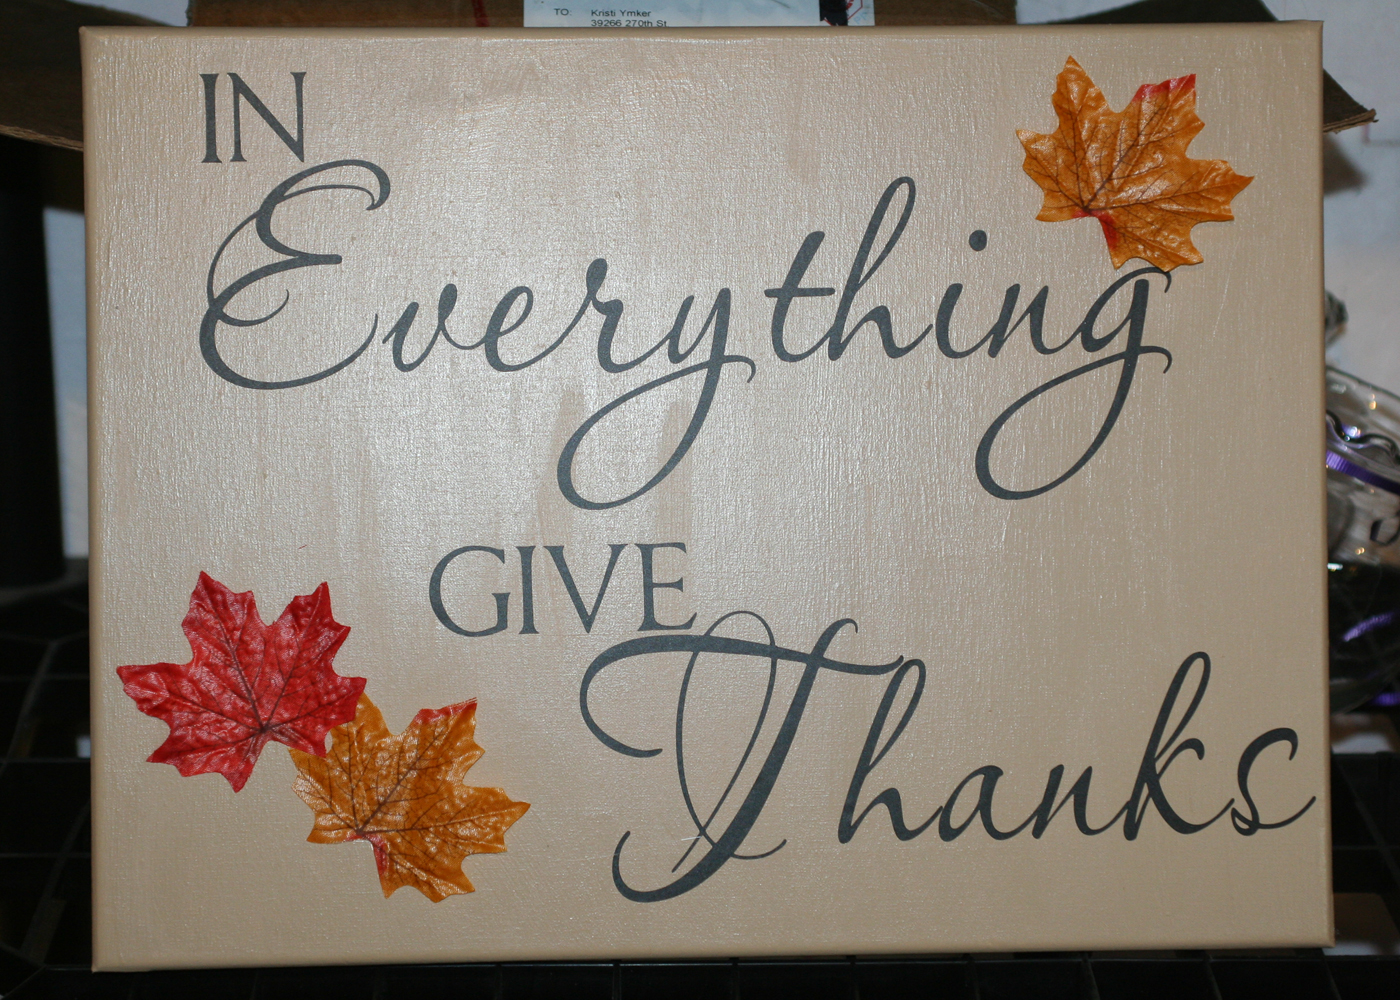 in-everything-give-thanks-kitchen-wall-decor-quote.jpg